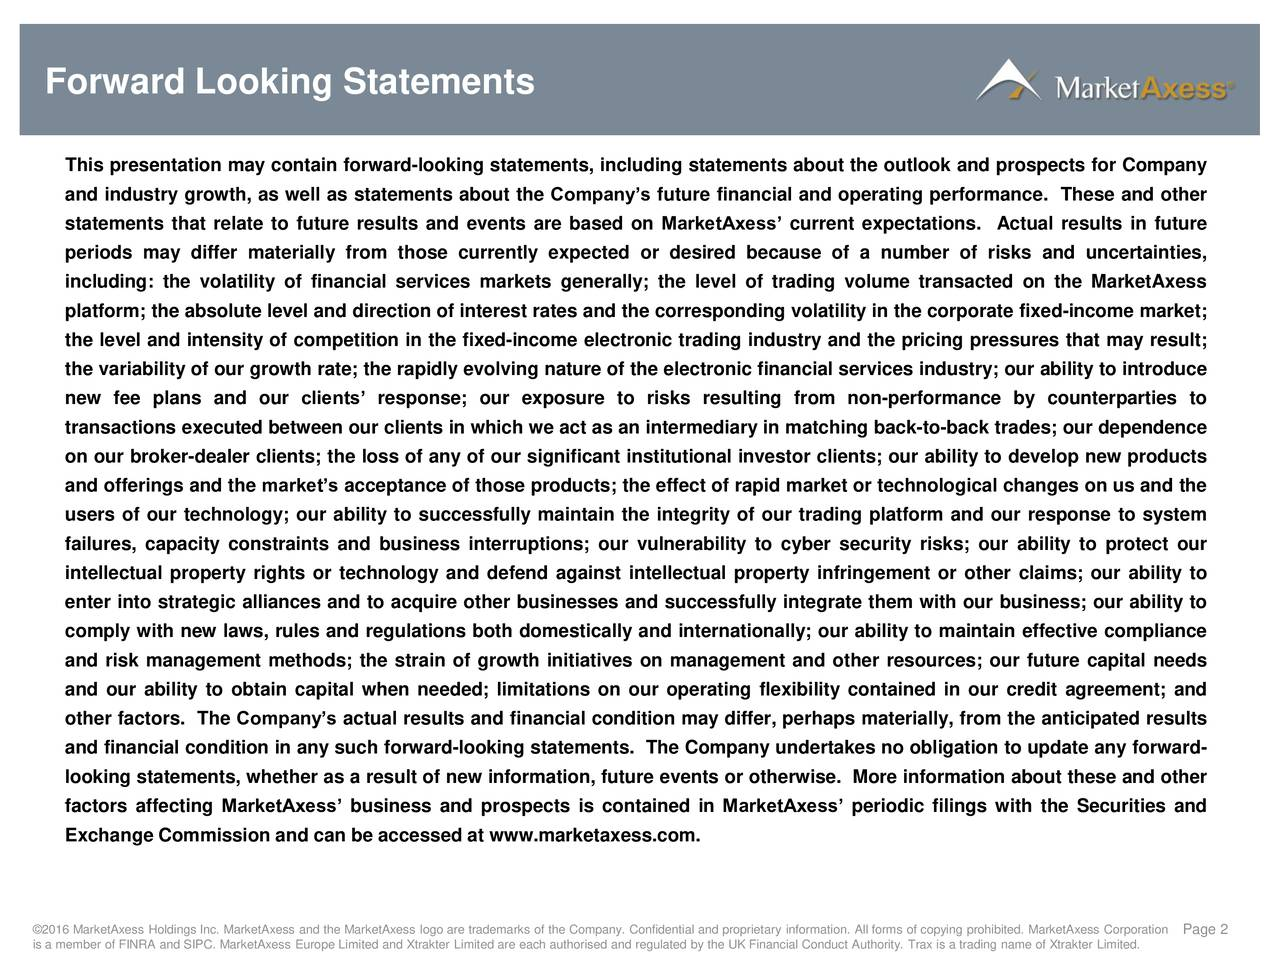 This presentation may contain forward-looking statements, including statements about the outlook and prospects for Company and industry growth, as well as statements about the Companys future financial and operating performance. These and other statements that relate to future results and events are based on MarketAxess current expectations. Actual results in future periods may differ materially from those currently expected or desired because of a number of risks and uncertainties, including: the volatility of financial services markets generally; the level of trading volume transacted on the MarketAxess platform; the absolute level and direction of interest rates and the corresponding volatility in the corporate fixed-income market; the level and intensity of competition in the fixed-income electronic trading industry and the pricing pressures that may result; the variability of our growth rate; the rapidly evolving nature of the electronic financial services industry; our ability to introduce new fee plans and our clients response; our exposure to risks resulting from non-performance by counterparties to transactions executed between our clients in which we act as an intermediary in matching back-to-back trades; our dependence on our broker-dealer clients; the loss of any of our significant institutional investor clients; our ability to develop new products and offerings and the markets acceptance of those products; the effect of rapid market or technological changes on us and the users of our technology; our ability to successfully maintain the integrity of our trading platform and our response to system failures, capacity constraints and business interruptions; our vulnerability to cyber security risks; our ability to protect our intellectual property rights or technology and defend against intellectual property infringement or other claims; our ability to enter into strategic alliances and to acquire other businesses and successfully integrate them with our business; our ability to comply with new laws, rules and regulations both domestically and internationally; our ability to maintain effective compliance and risk management methods; the strain of growth initiatives on management and other resources; our future capital needs and our ability to obtain capital when needed; limitations on our operating flexibility contained in our credit agreement; and other factors. The Companys actual results and financial condition may differ, perhaps materially, from the anticipated results and financial condition in any such forward-looking statements. The Company undertakes no obligation to update any forward- looking statements, whether as a result of new information, future events or otherwise. More information about these and other factors affecting MarketAxess business and prospects is contained in MarketAxess periodic filings with the Securities and Exchange Commission and can be accessed at www.marketaxess.com. is a member of FINRA and SIPC. MarketAxess Europe Limited and Xtrakter Limited are each authorised and regulated by the UK Financial Conduct Authority. Trax is a trading name of Xtrakter Limited.ion